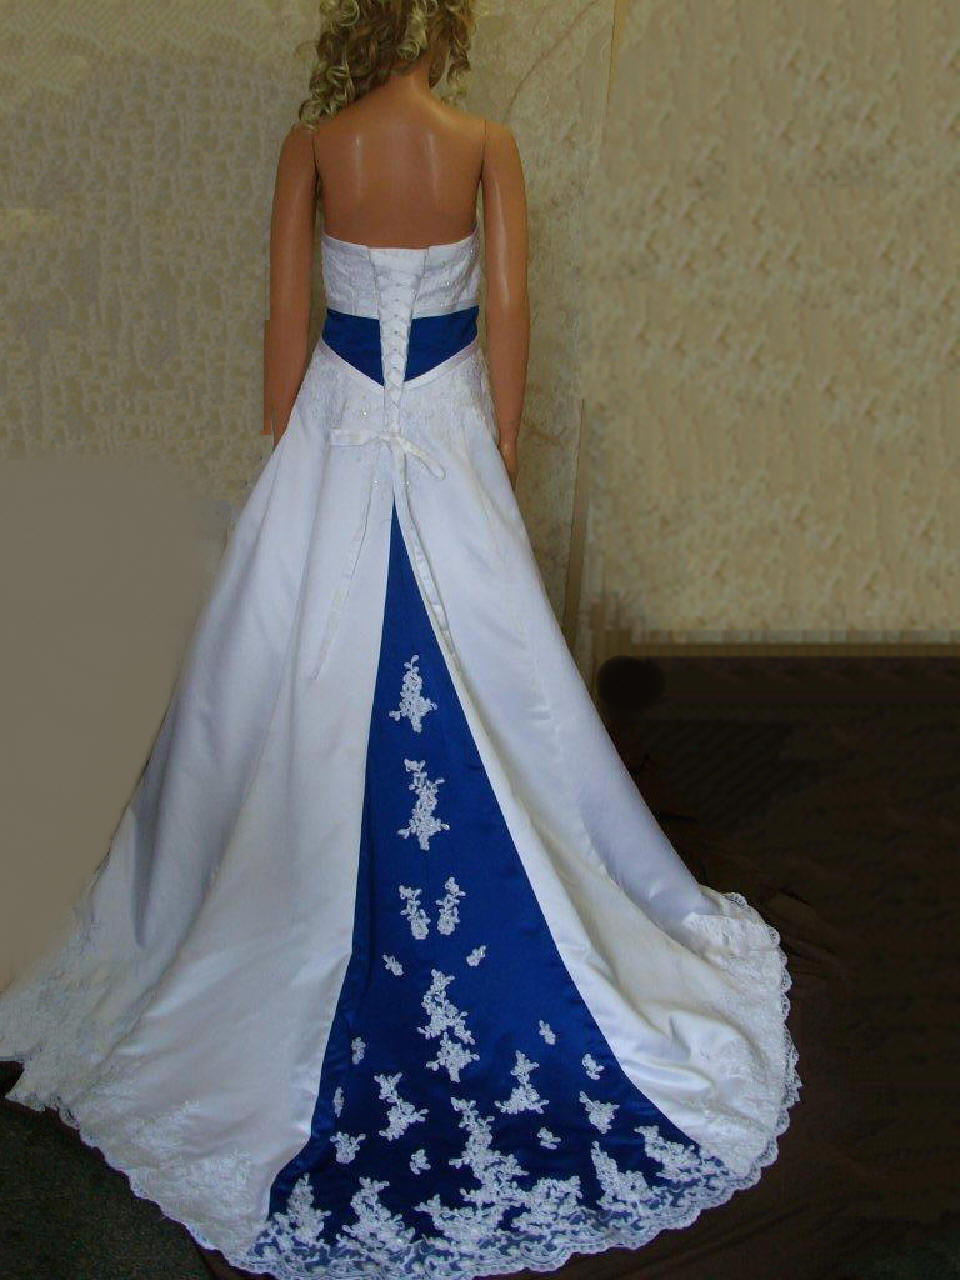 Bridal gowns with color wedding dress with color blue and white strapless wedding gown